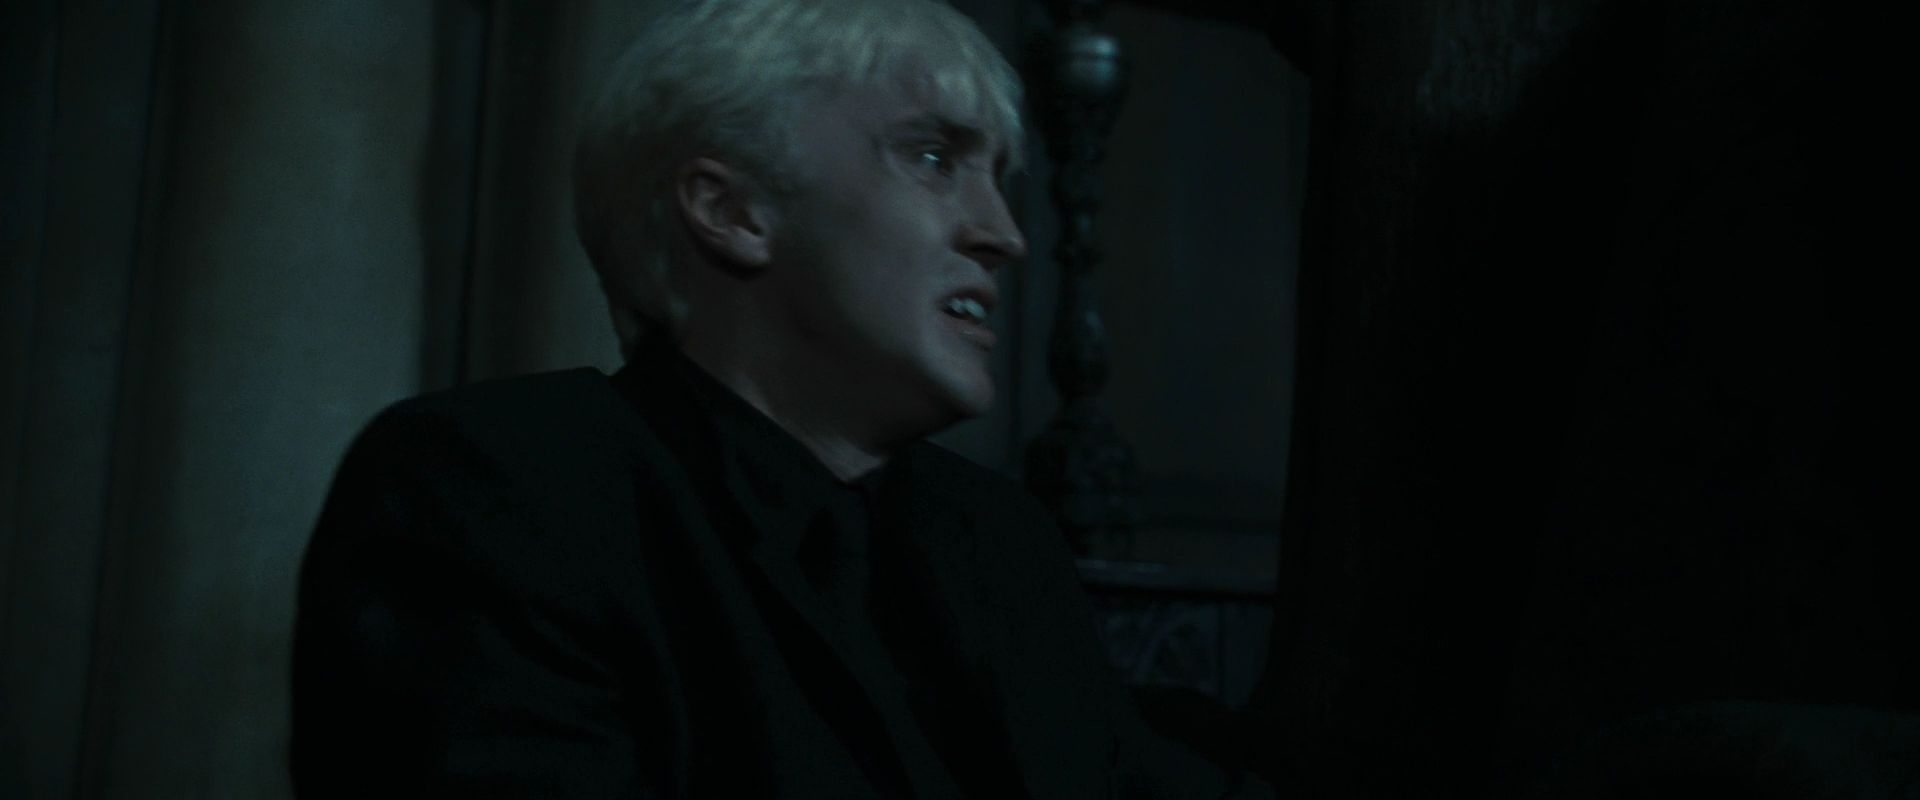 Draco in DH part 1 - Draco Malfoy Image (20758765) - Fanpop